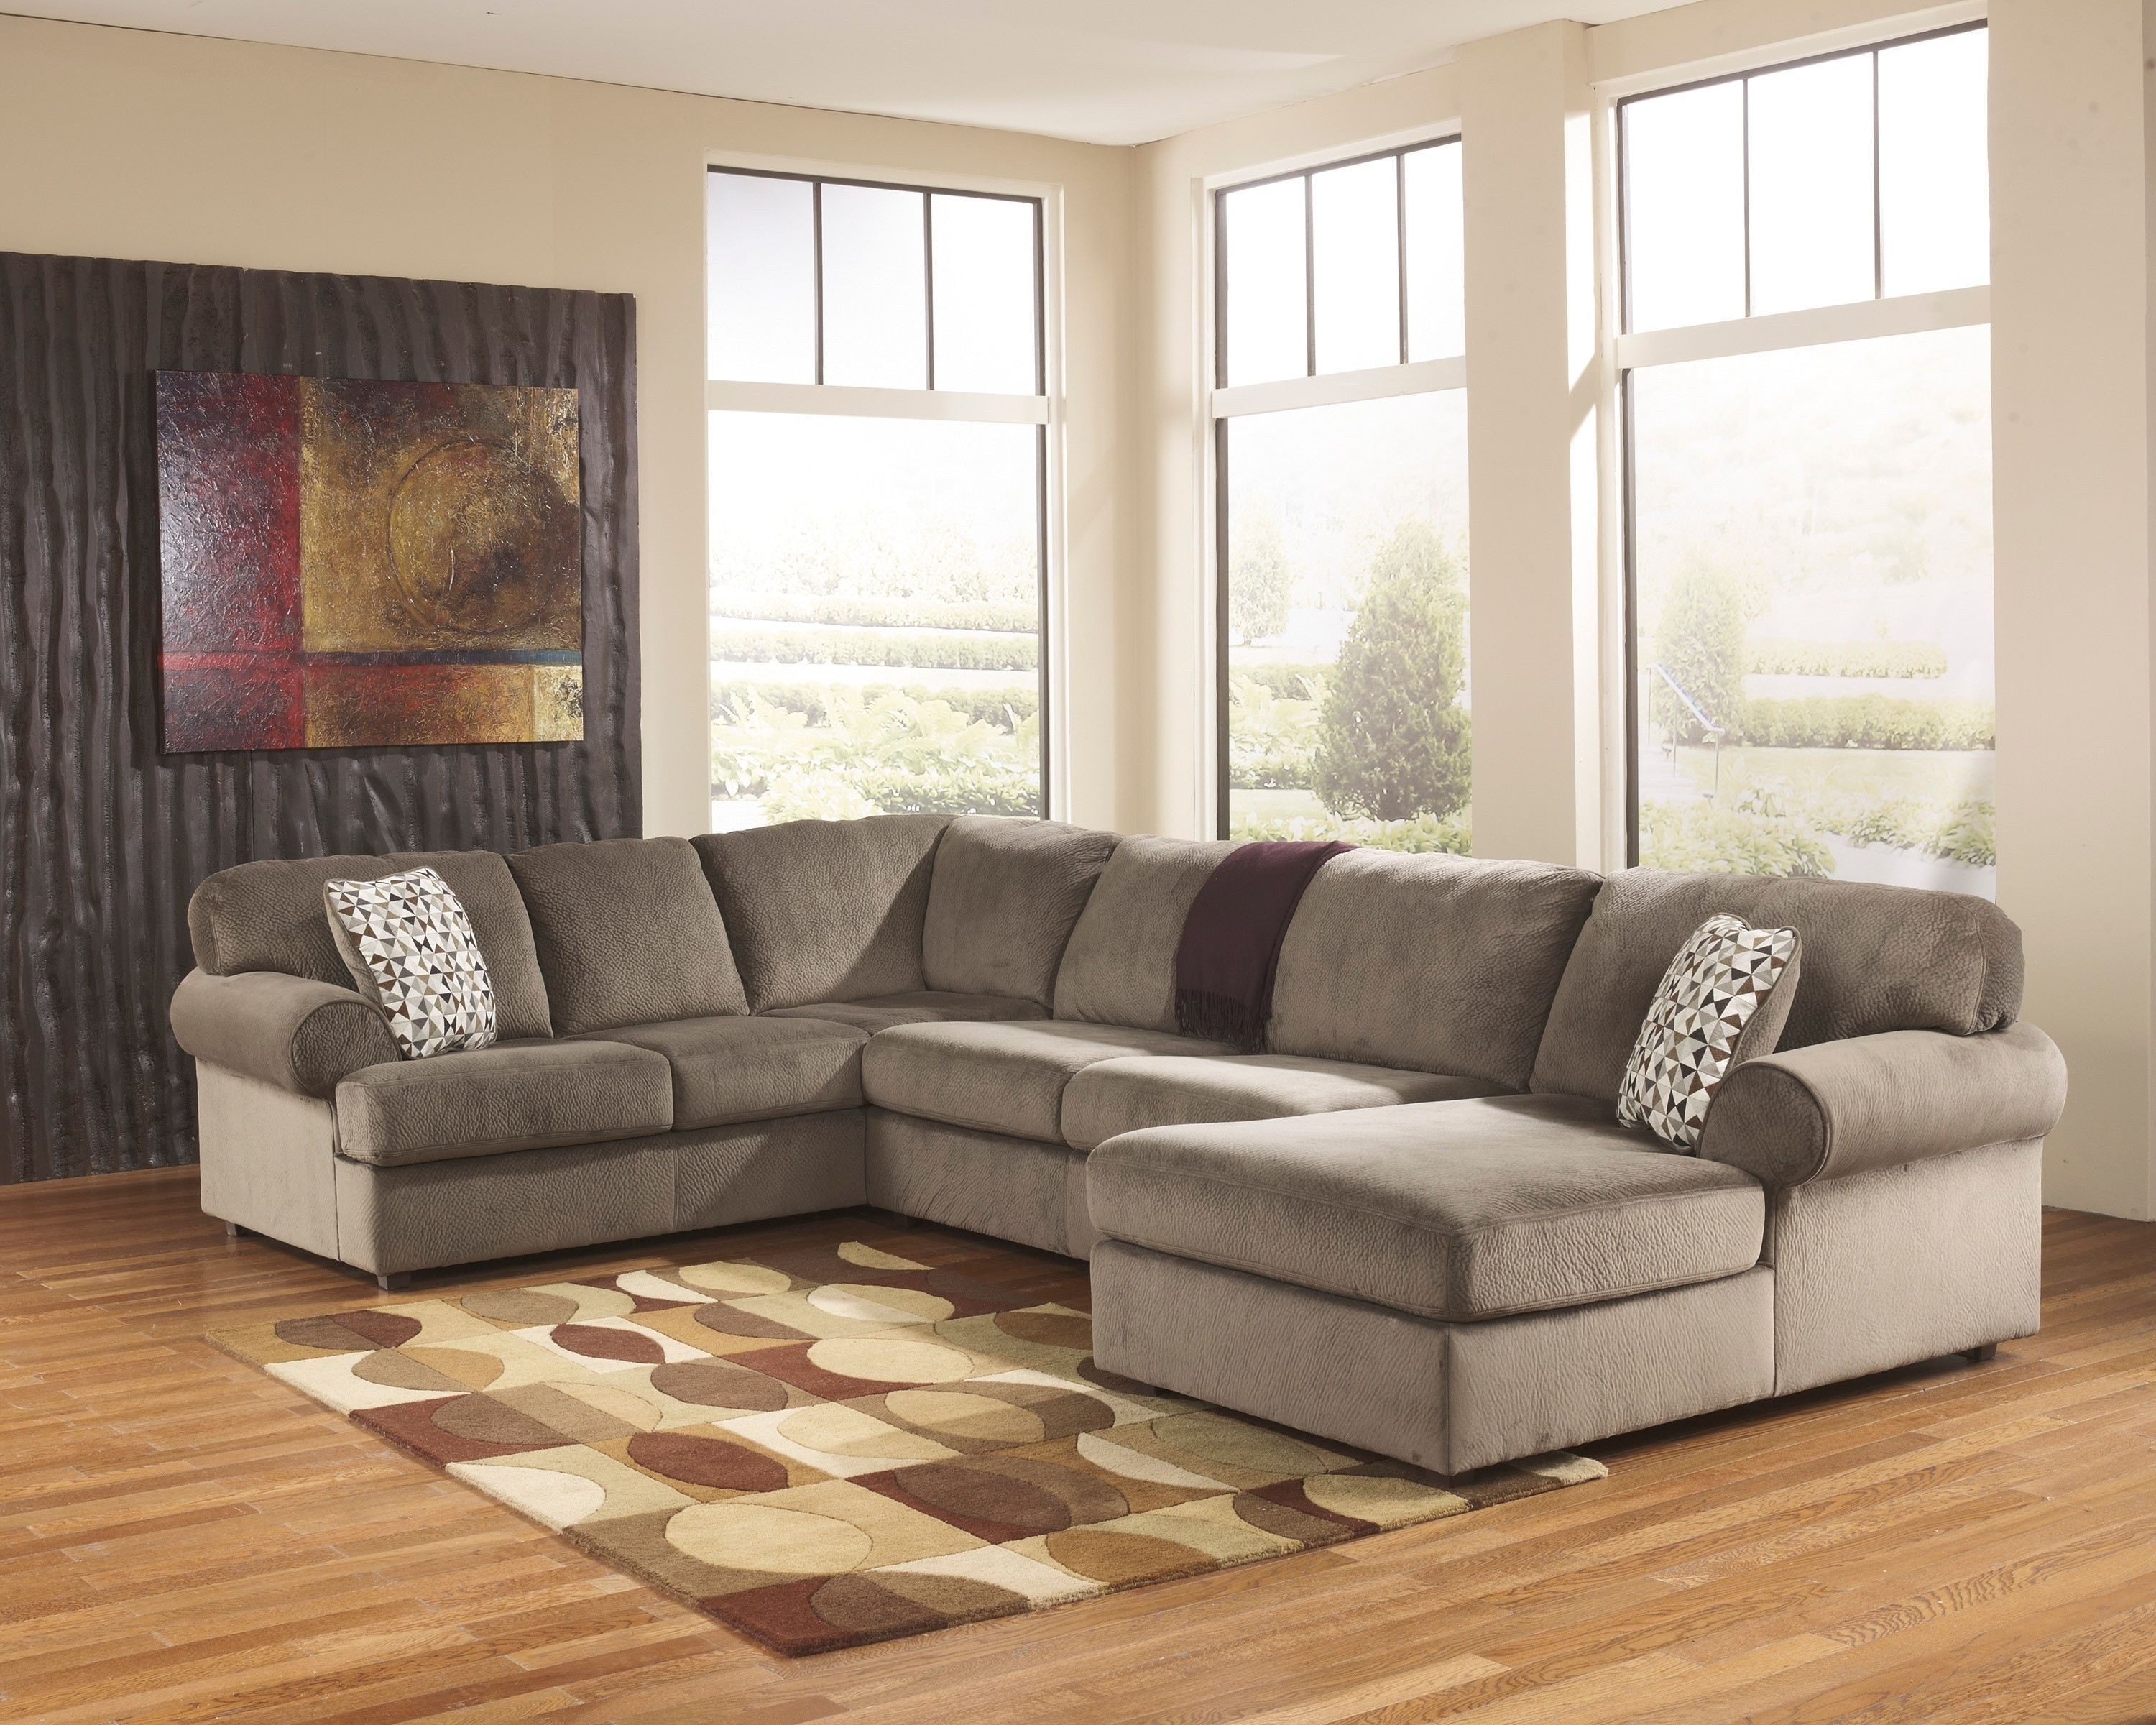 Elk Grove Ca Sectional Sofas Pertaining To Preferred Jessa Place Dune 3 Piece Sectional Sofa For $ (View 6 of 15)